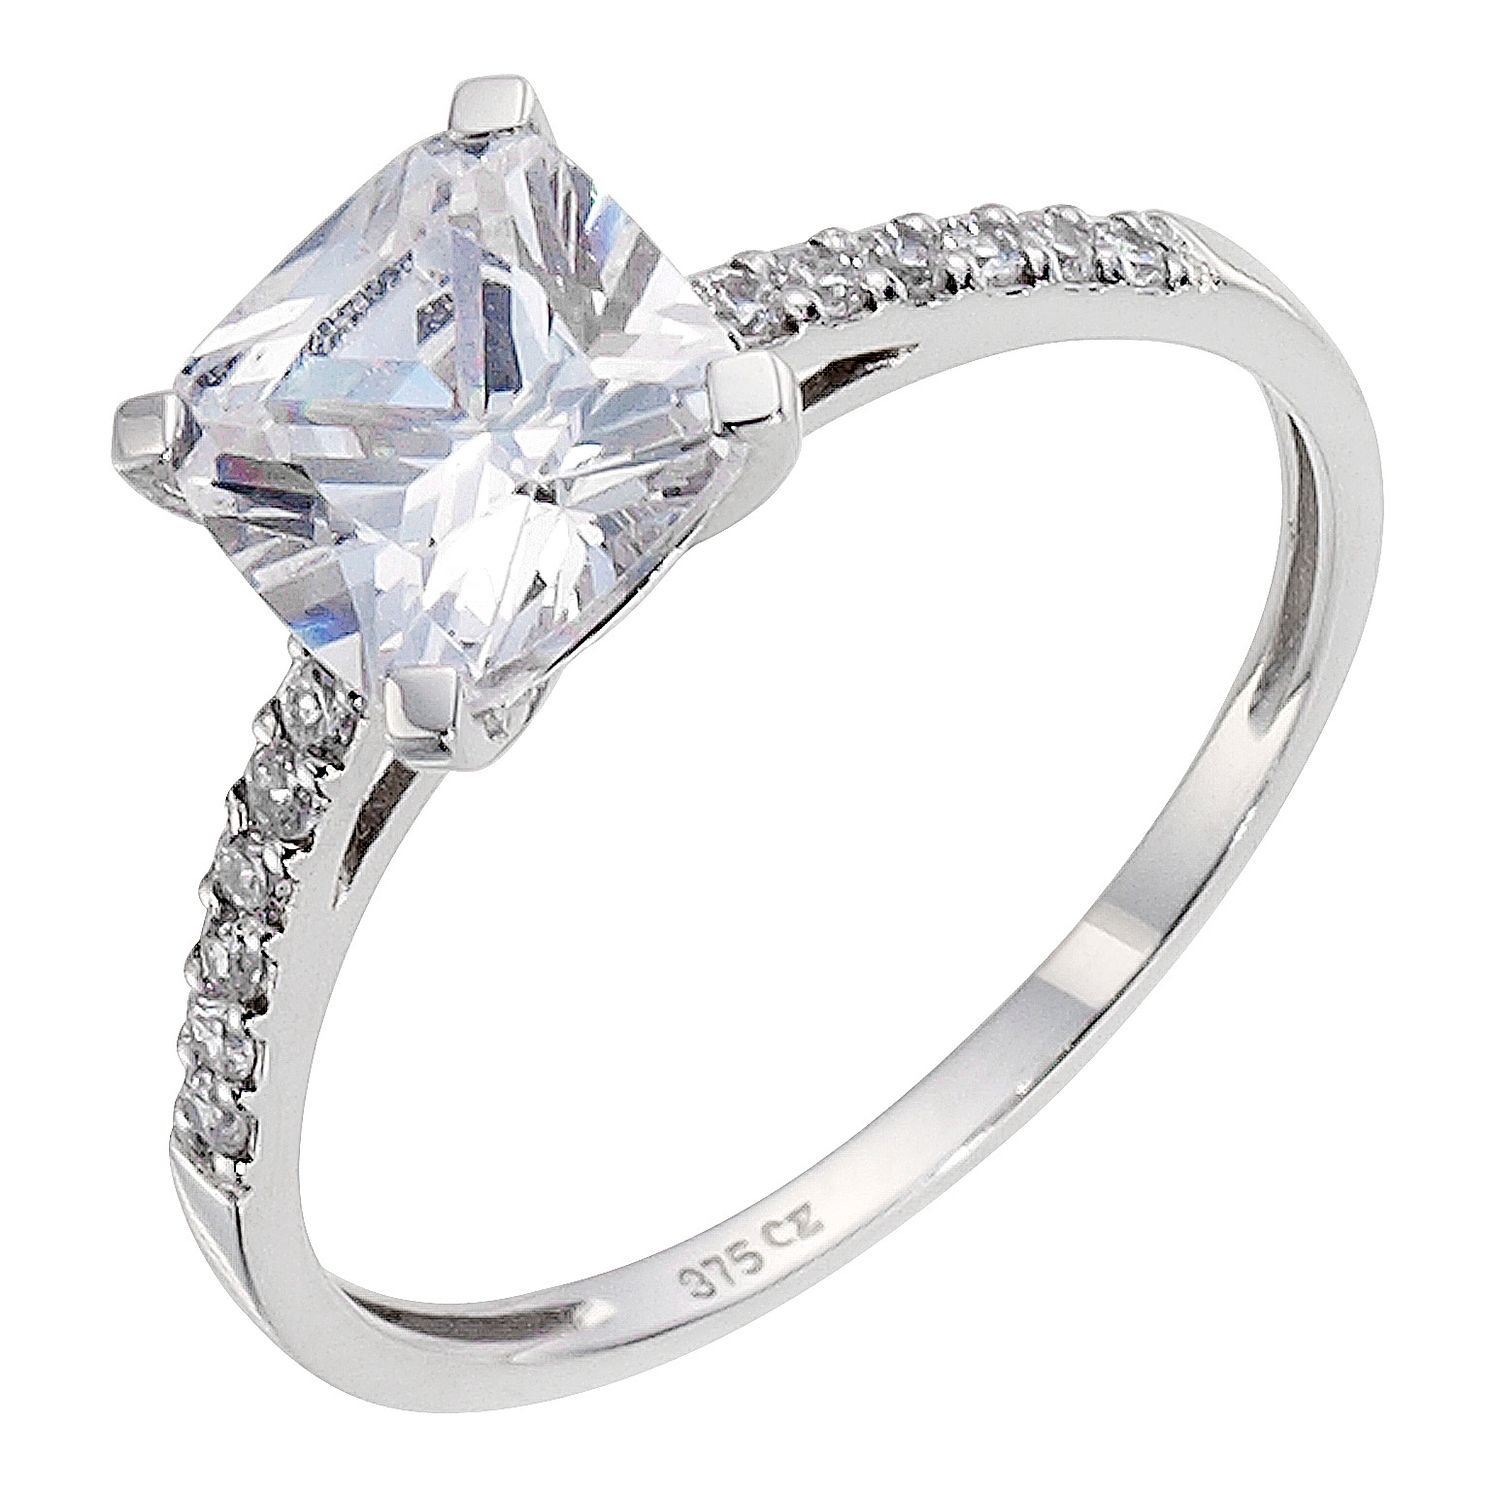 jewellery sterling white cubic in ring zirconia with jewelry silver